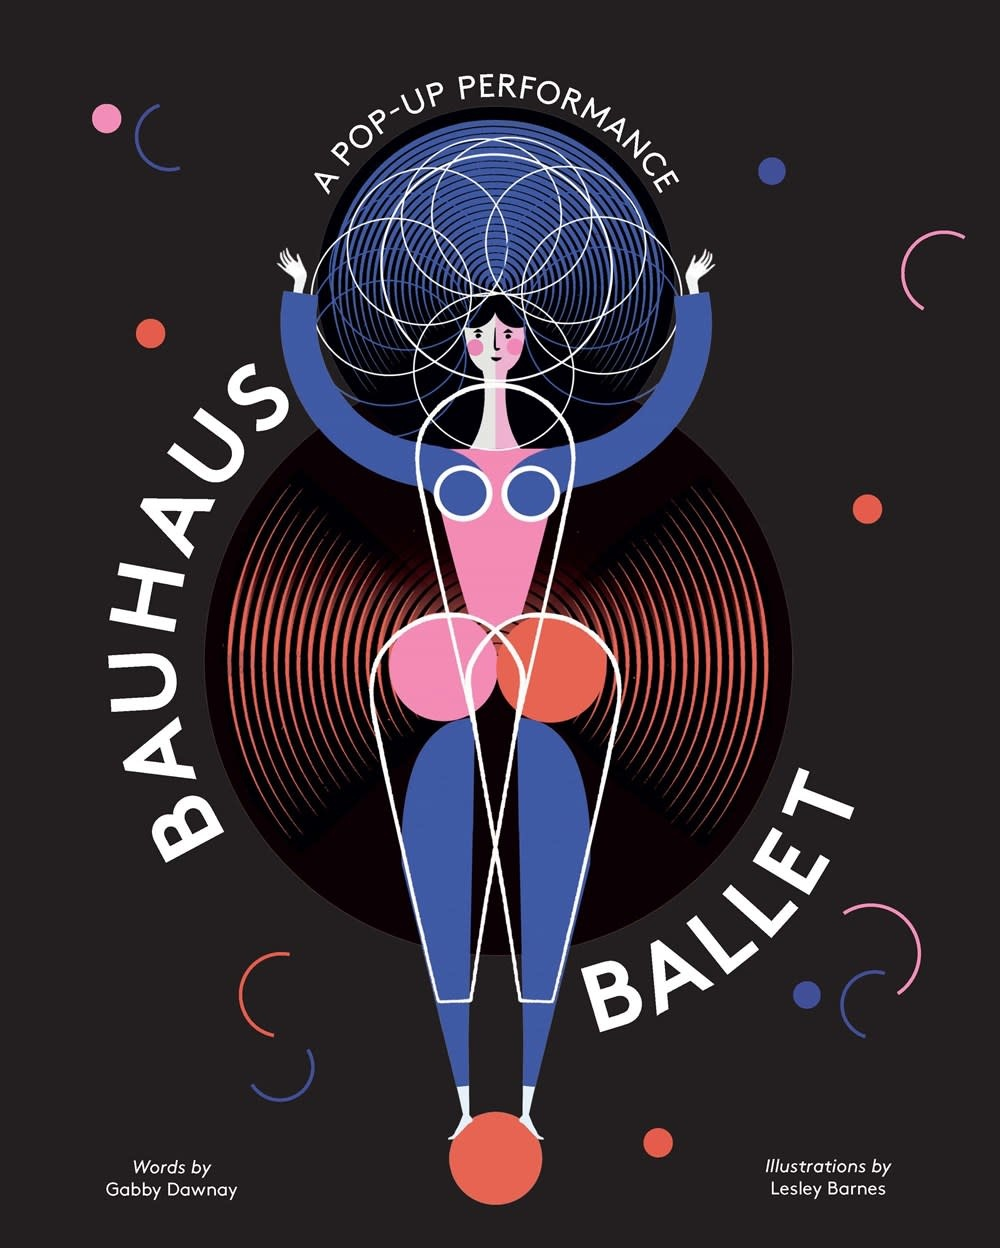 Laurence King Publishing Bauhaus Ballet: A Pop-Up Performance